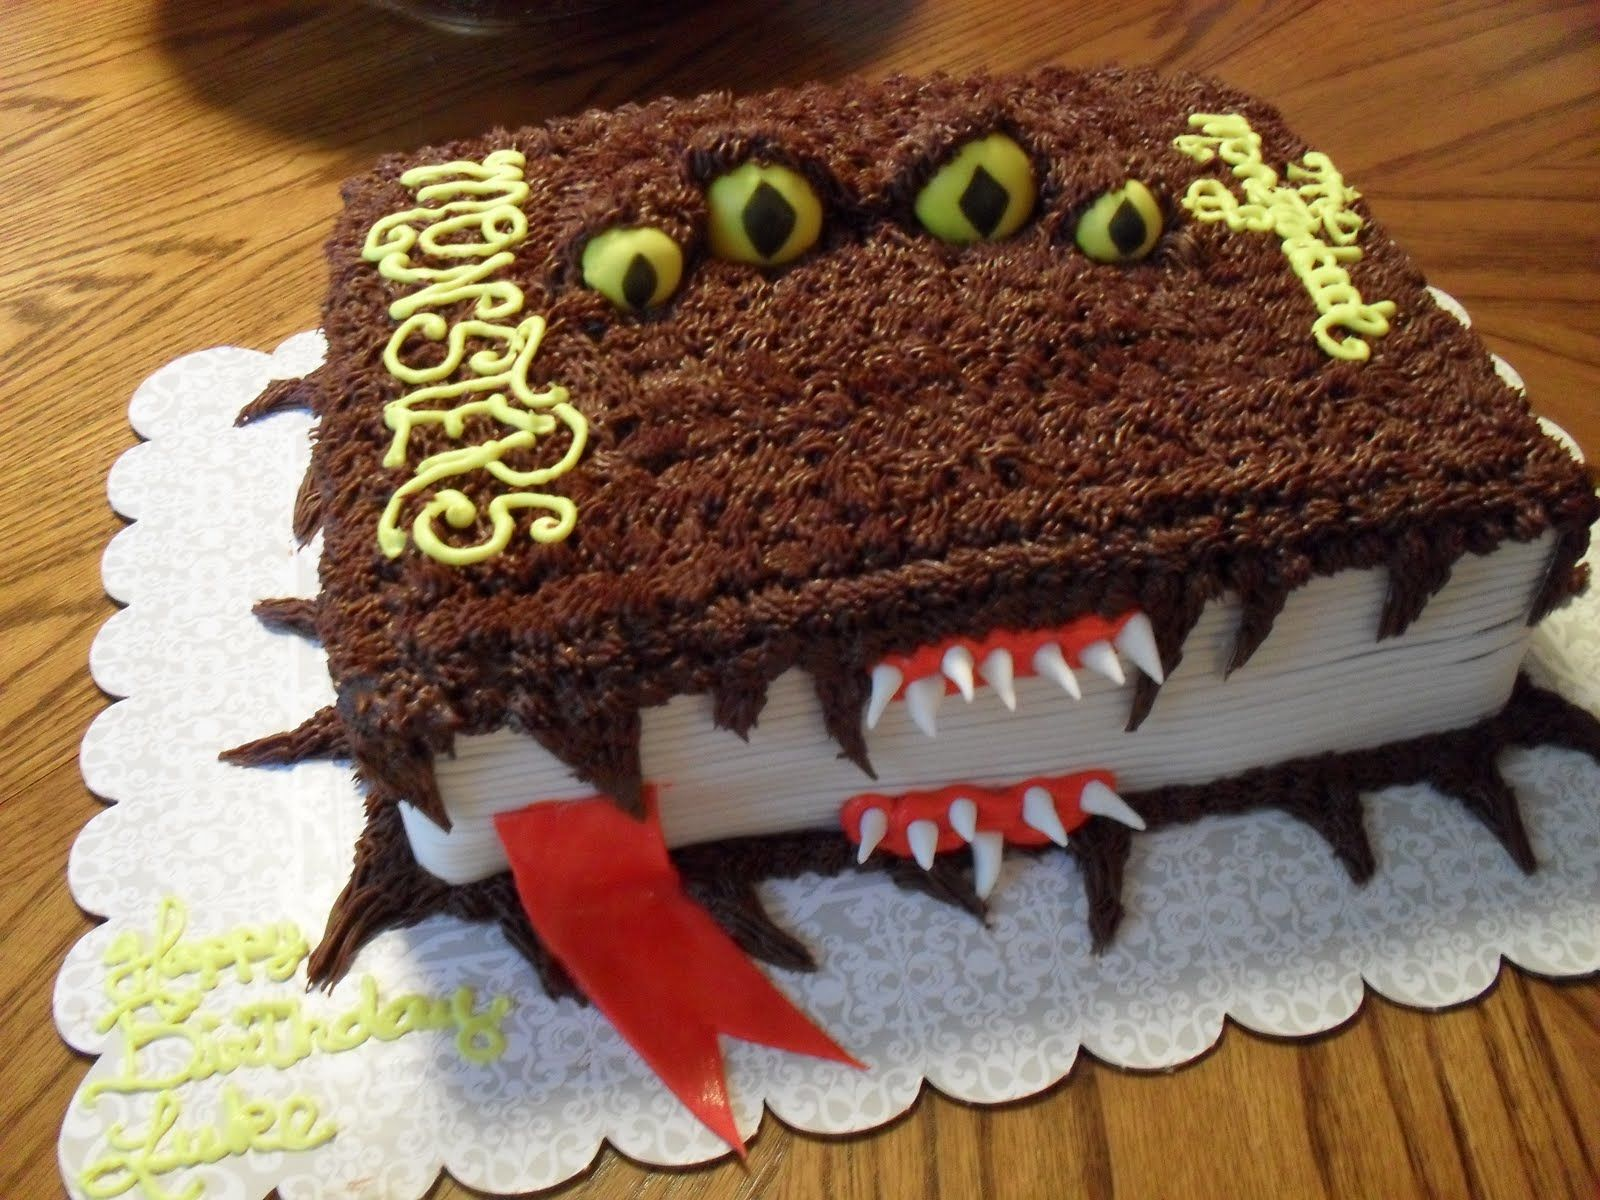 Monster book of monsters cake Awesome   Harry potter birthday cake, Harry potter cake, Harry ...